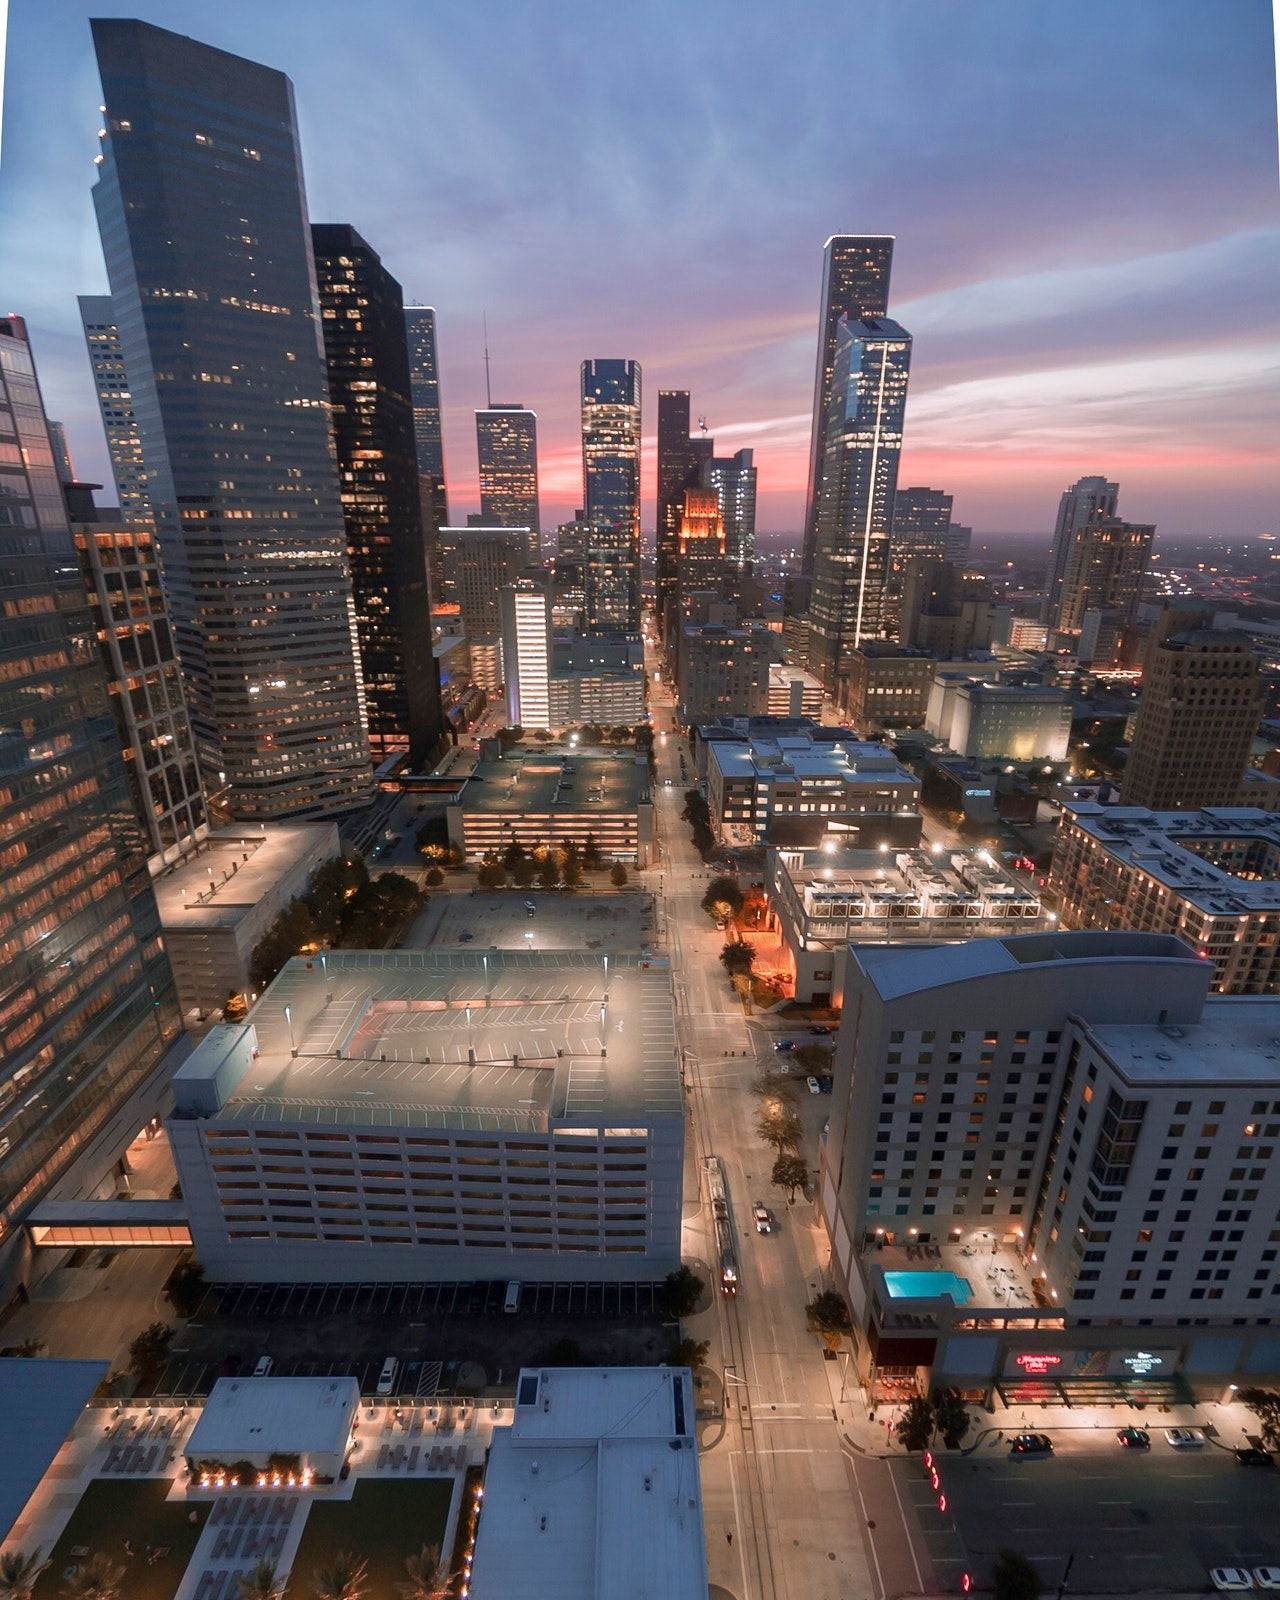 Houston vs Philadelphia - Where is the best place to live?